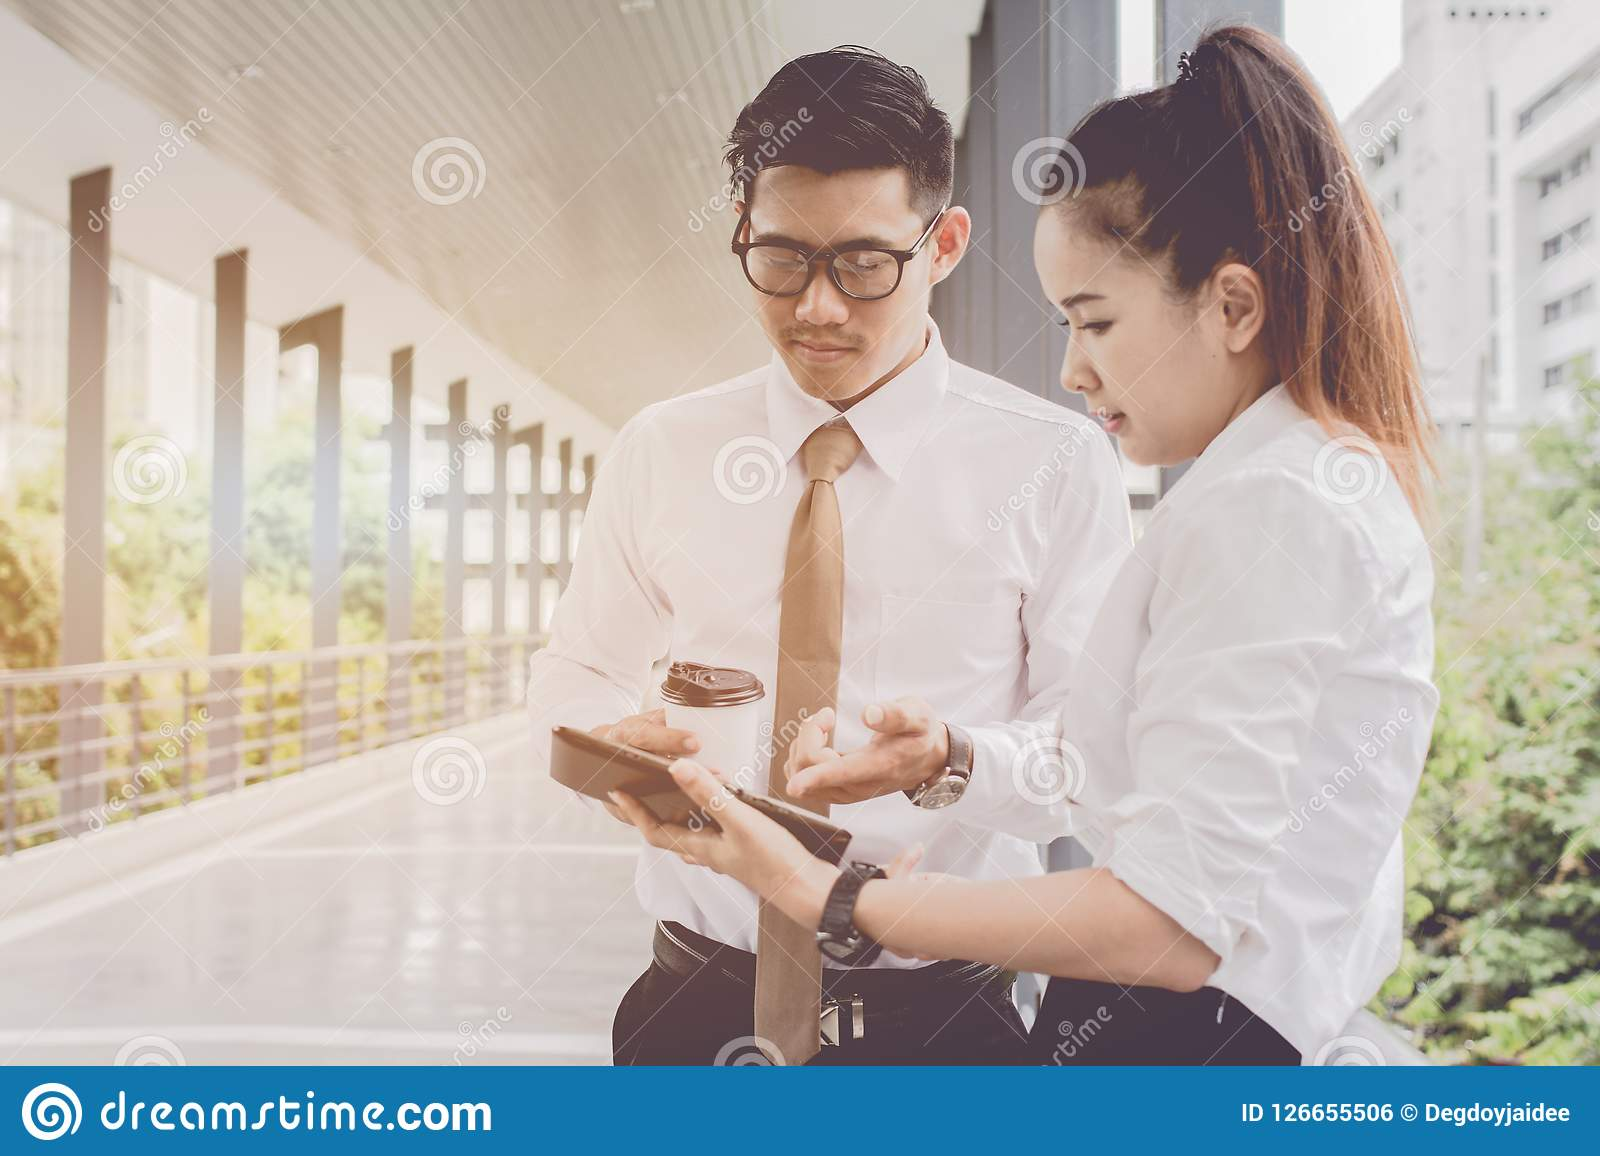 Businessman and woman using tablet of working. Meetings the commercial activities in promoting. Together create a mutually benefic